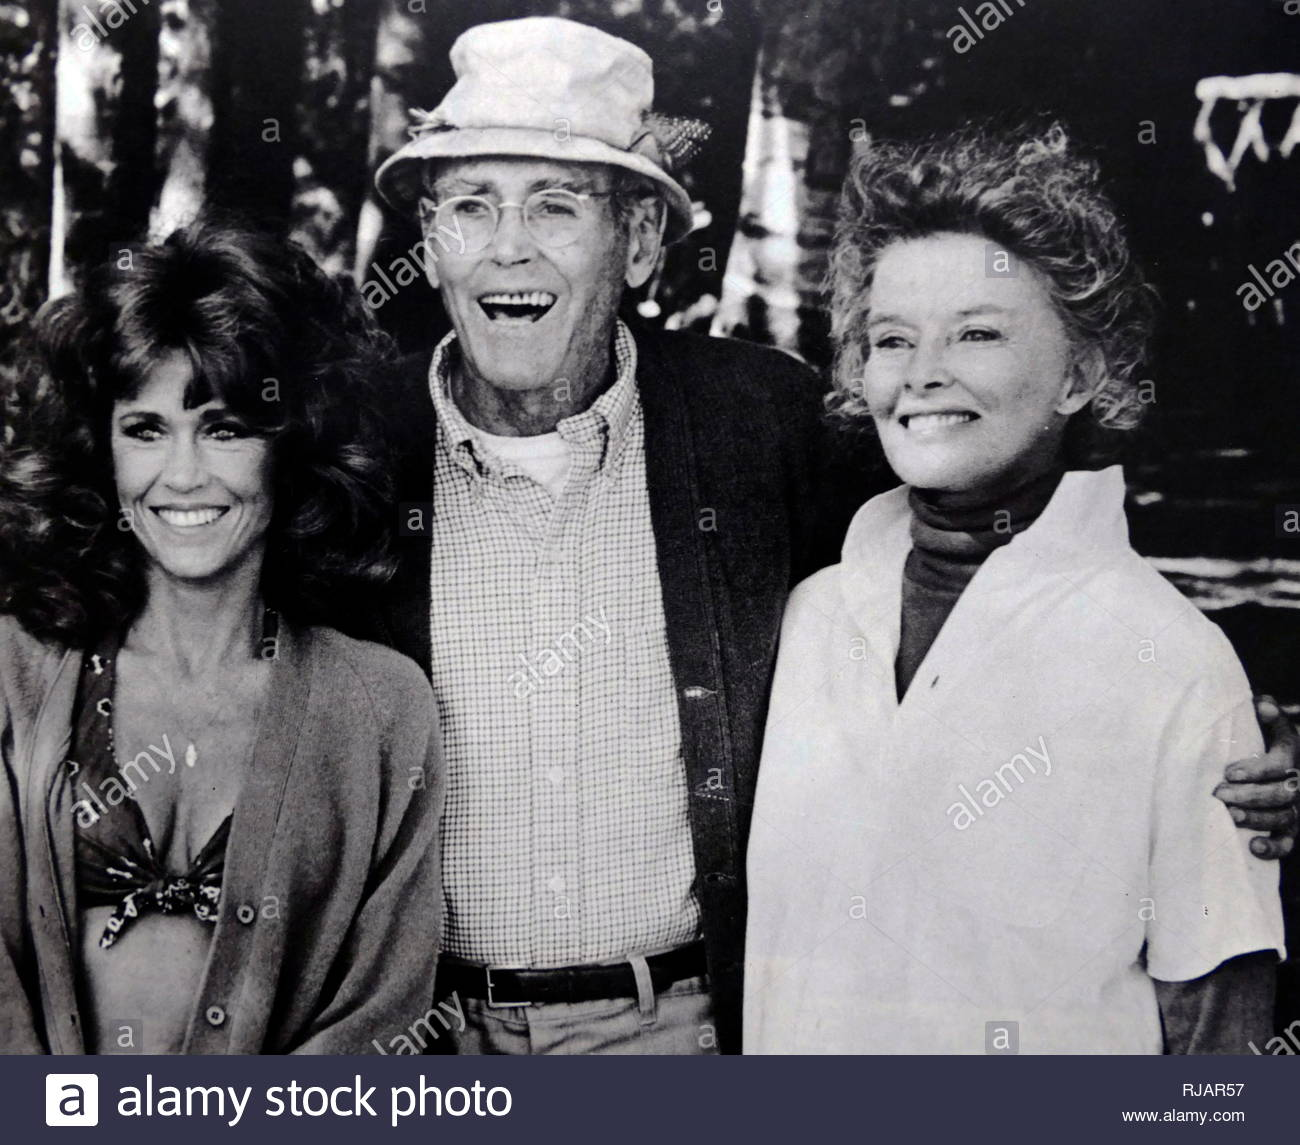 'On Golden Pond' a 1981 American drama film, directed by Mark Rydell.